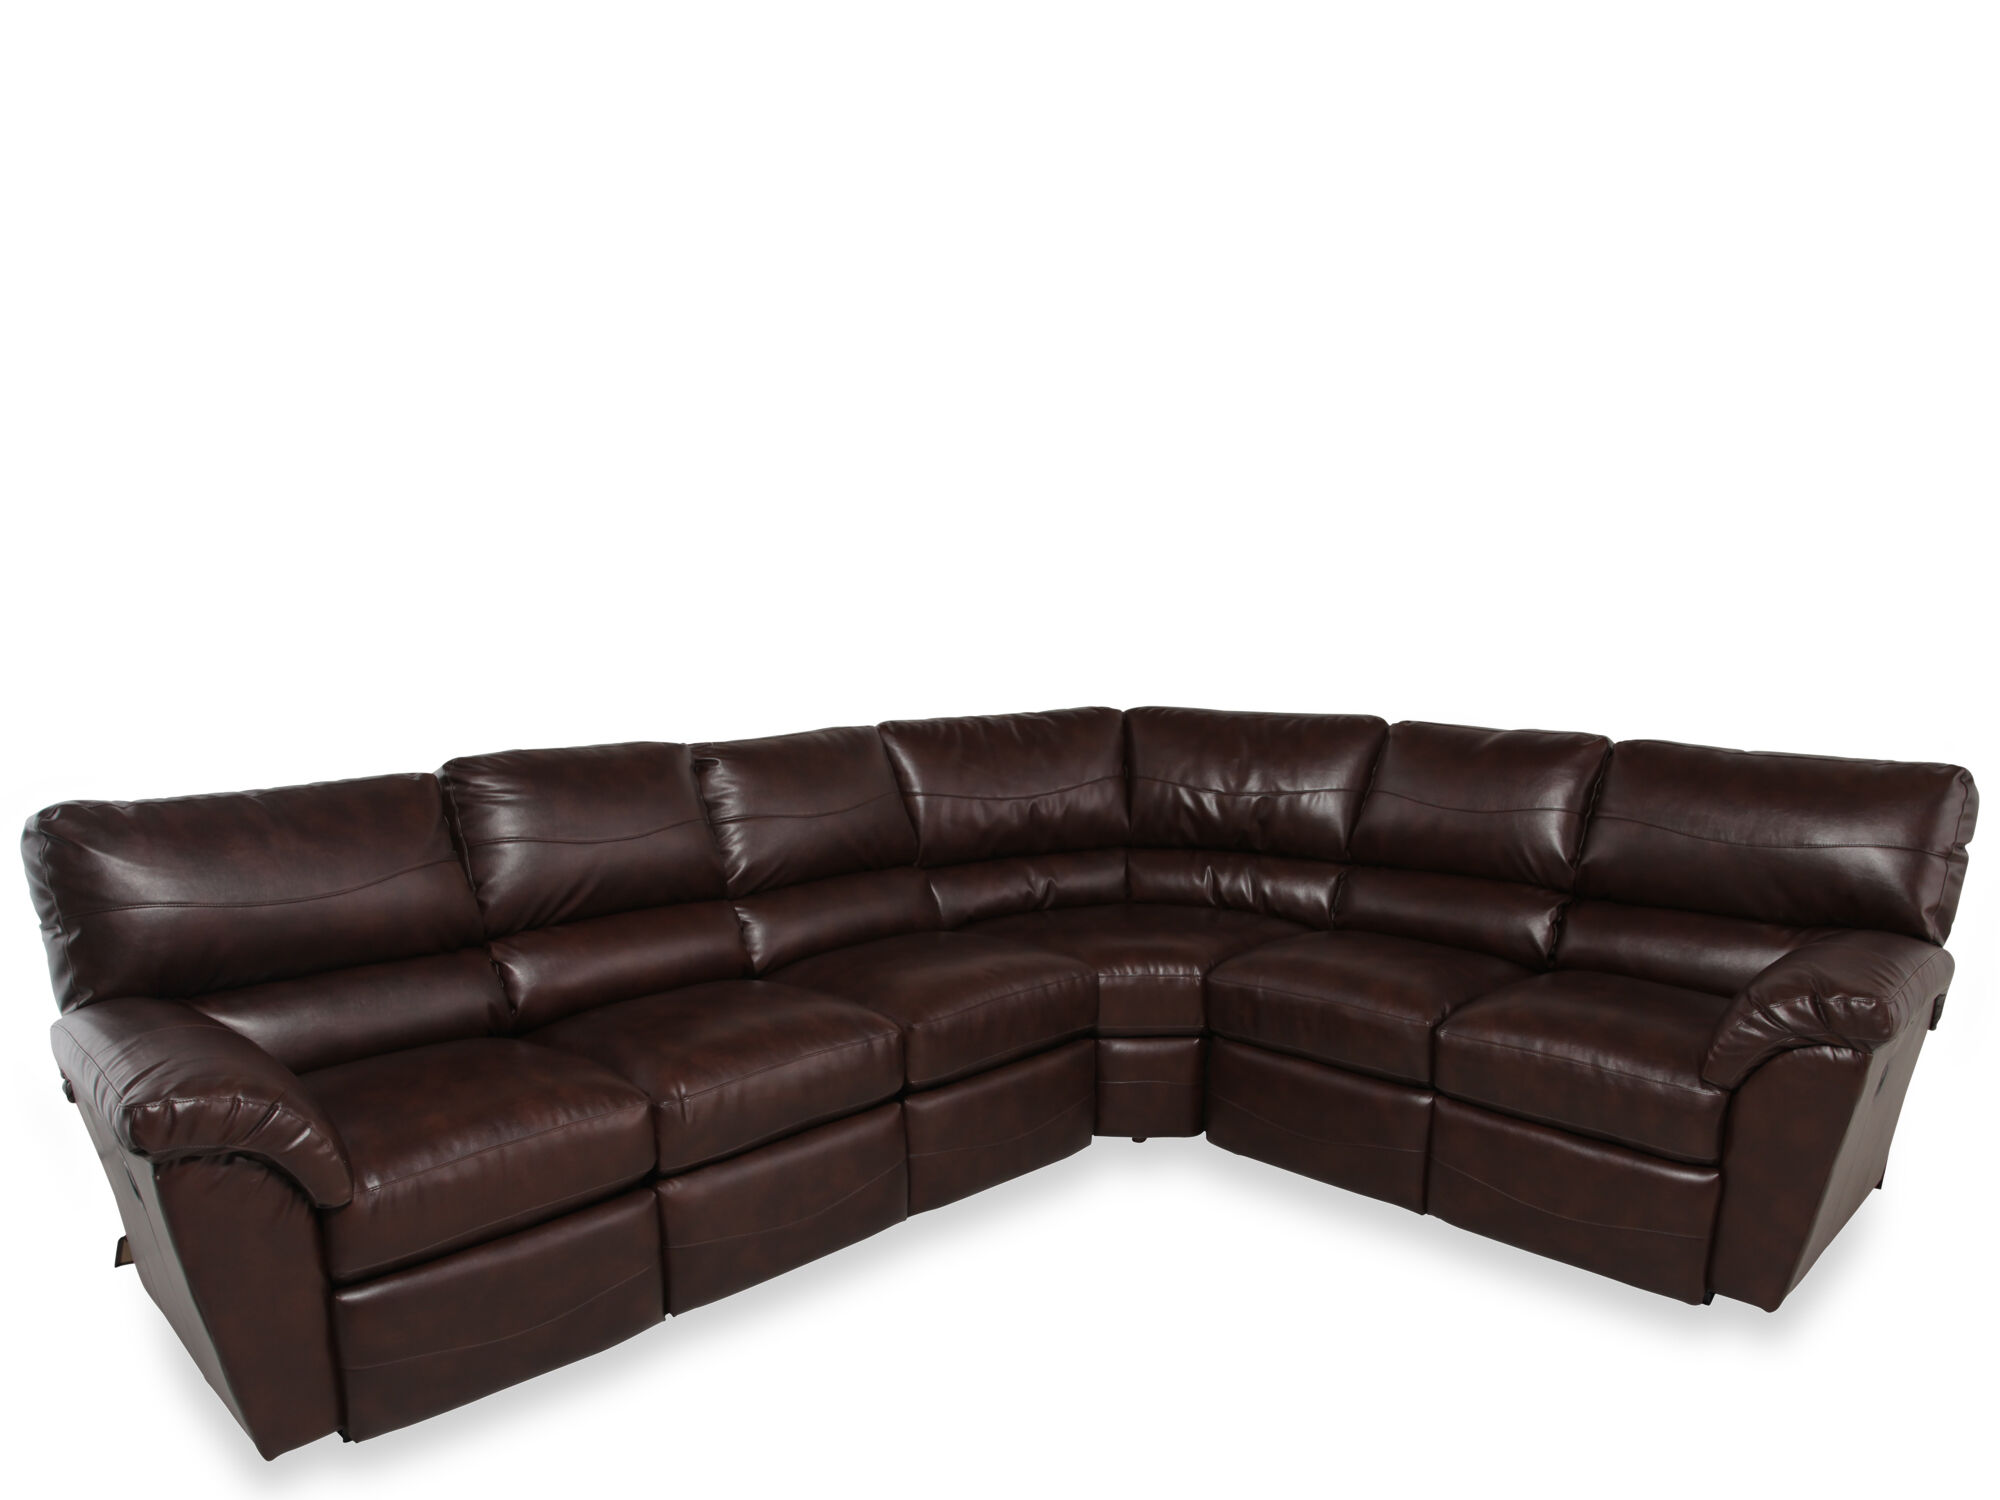 La-Z-Boy Reese Three-Piece Dual Recliner Sectional  sc 1 st  Mathis Brothers : la z boy reese sectional - Sectionals, Sofas & Couches